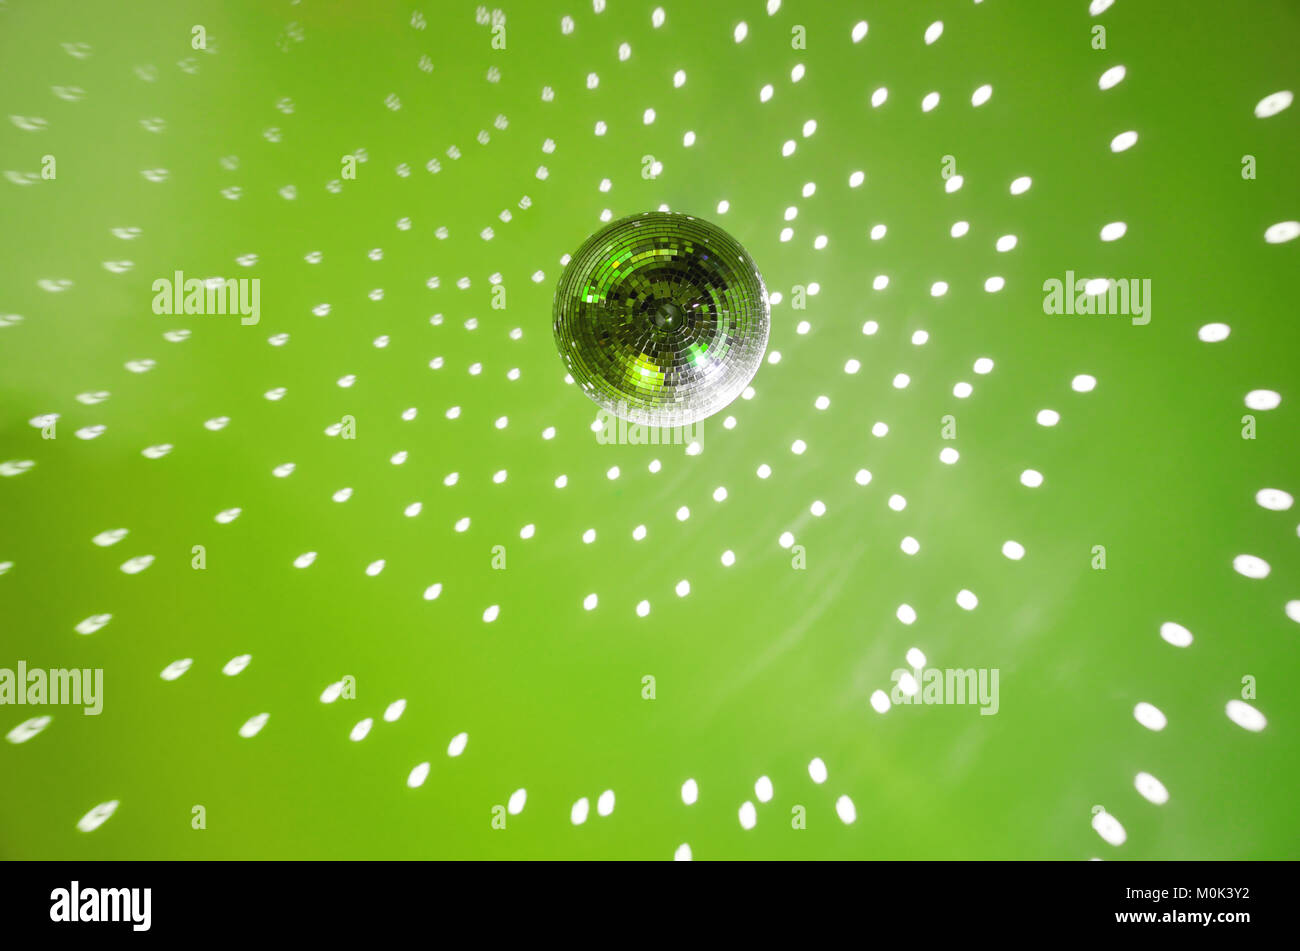 Disk ball in motion on green background - Stock Image